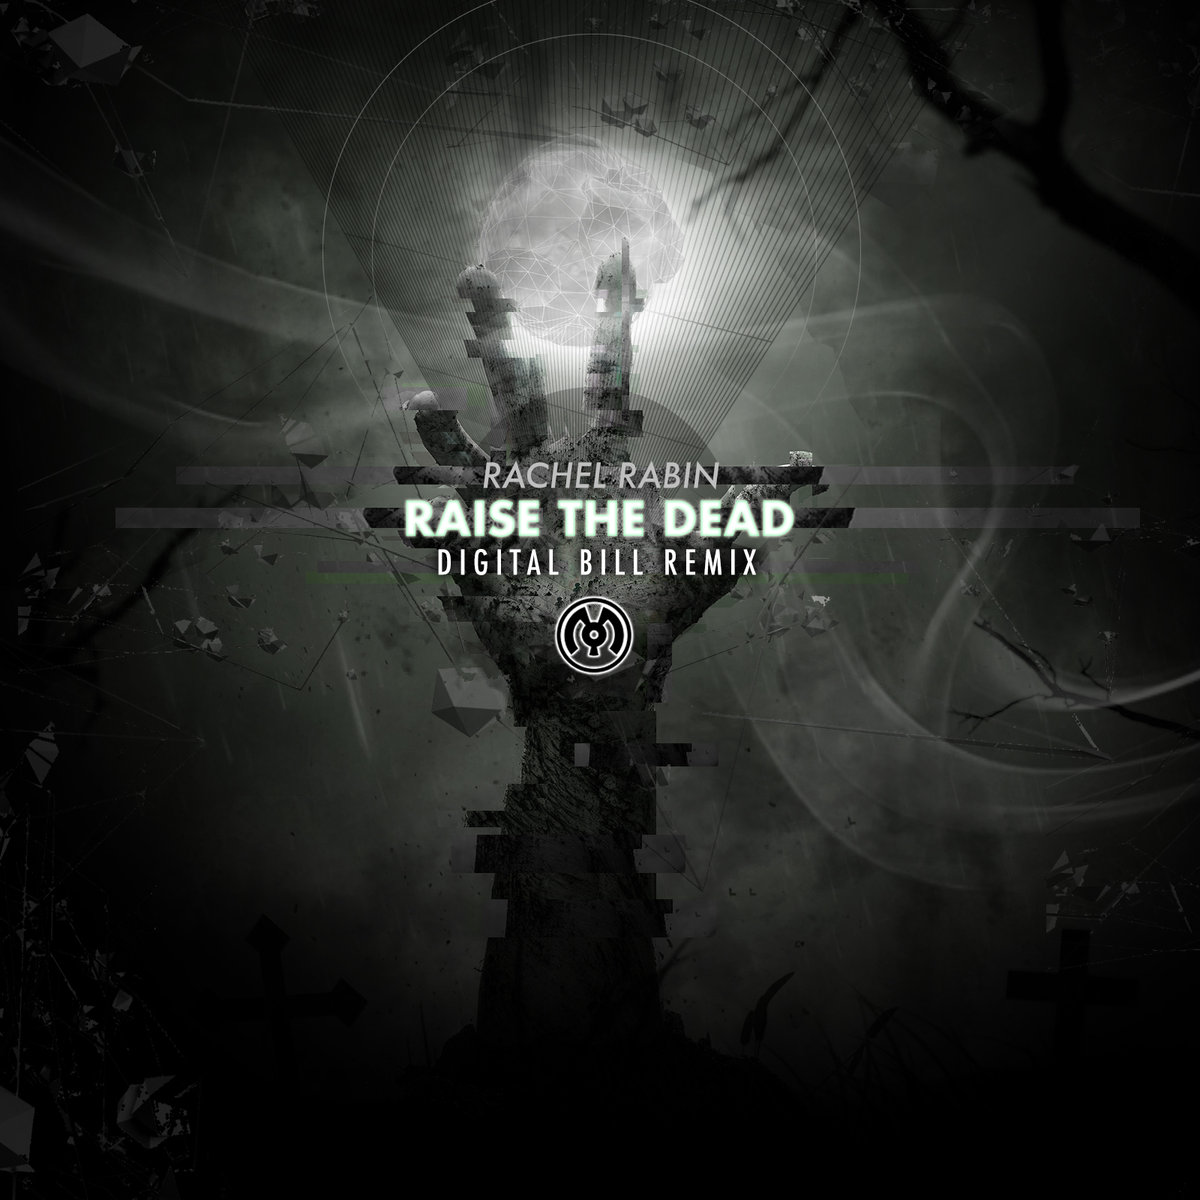 Rachel Rabin - Raise The Dead (Digital Bill Remix) @ 'Rachel Rabin - Raise The Dead (Digital Bill Remix)' album (electronic, dubstep)